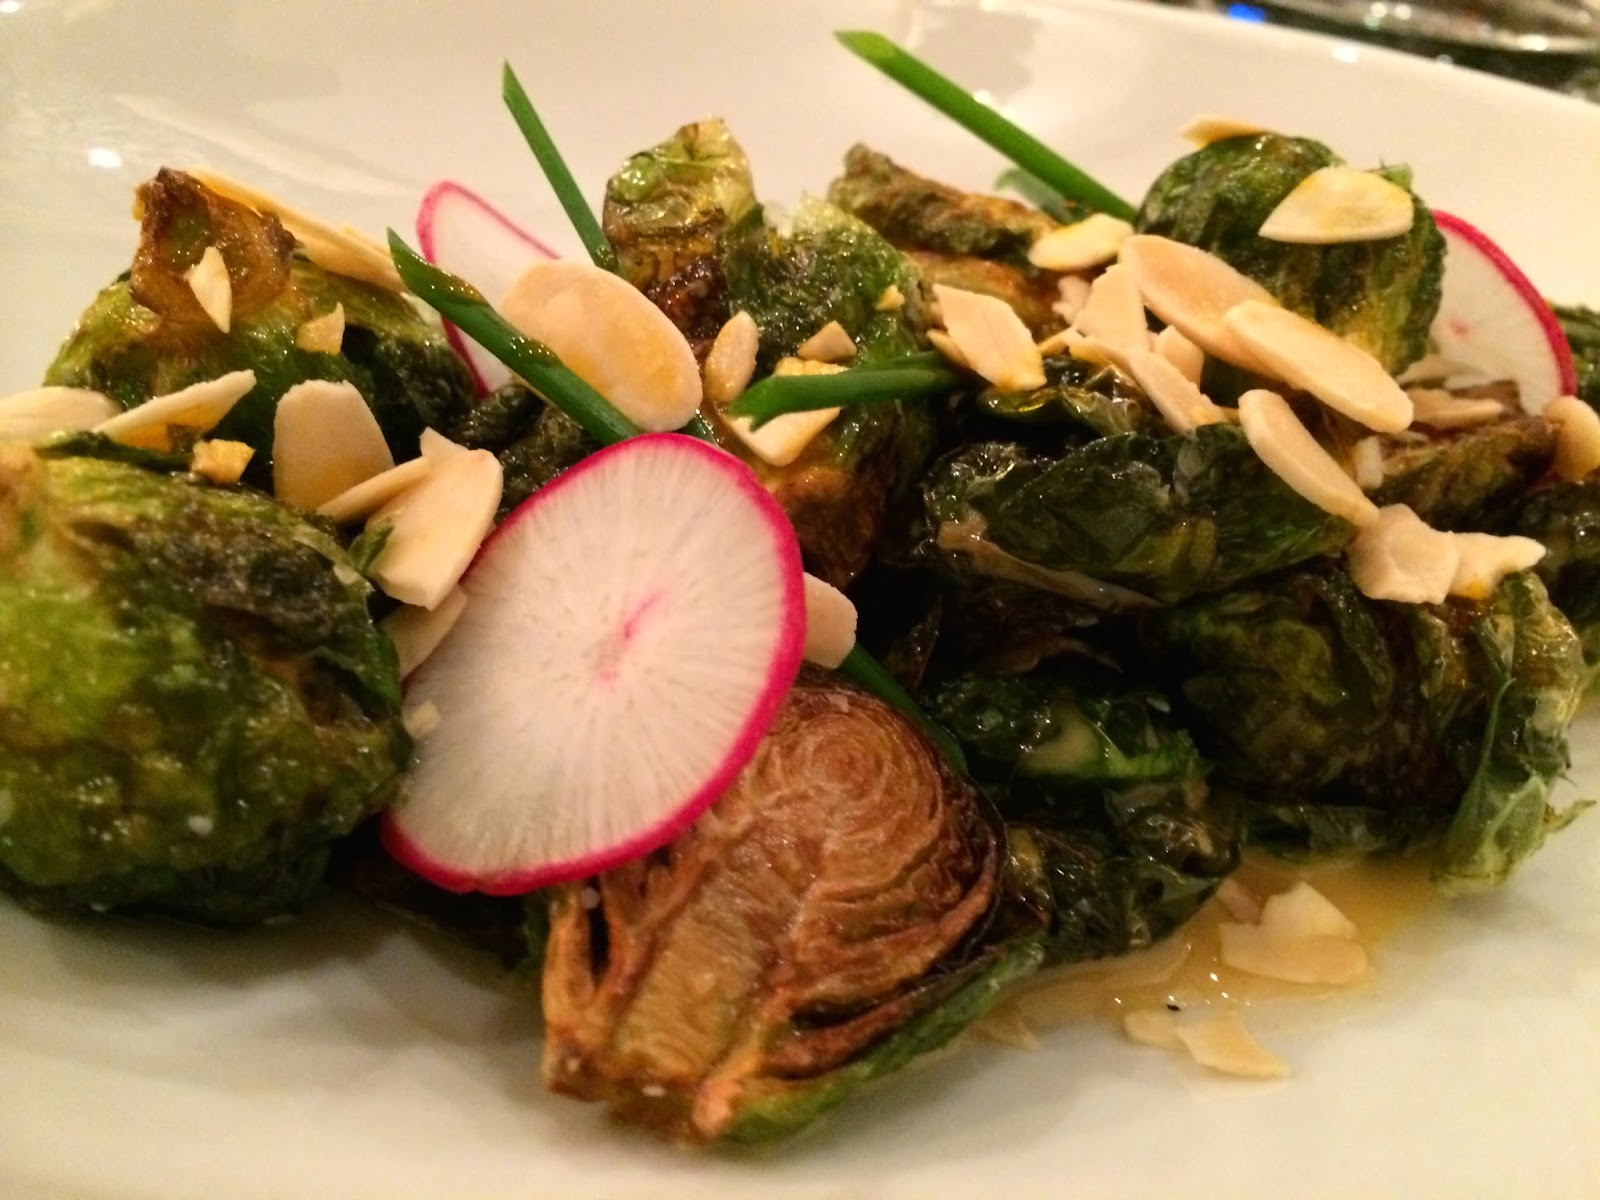 Brussels sprouts, radish, almonds, and more at the Fountain Lounge